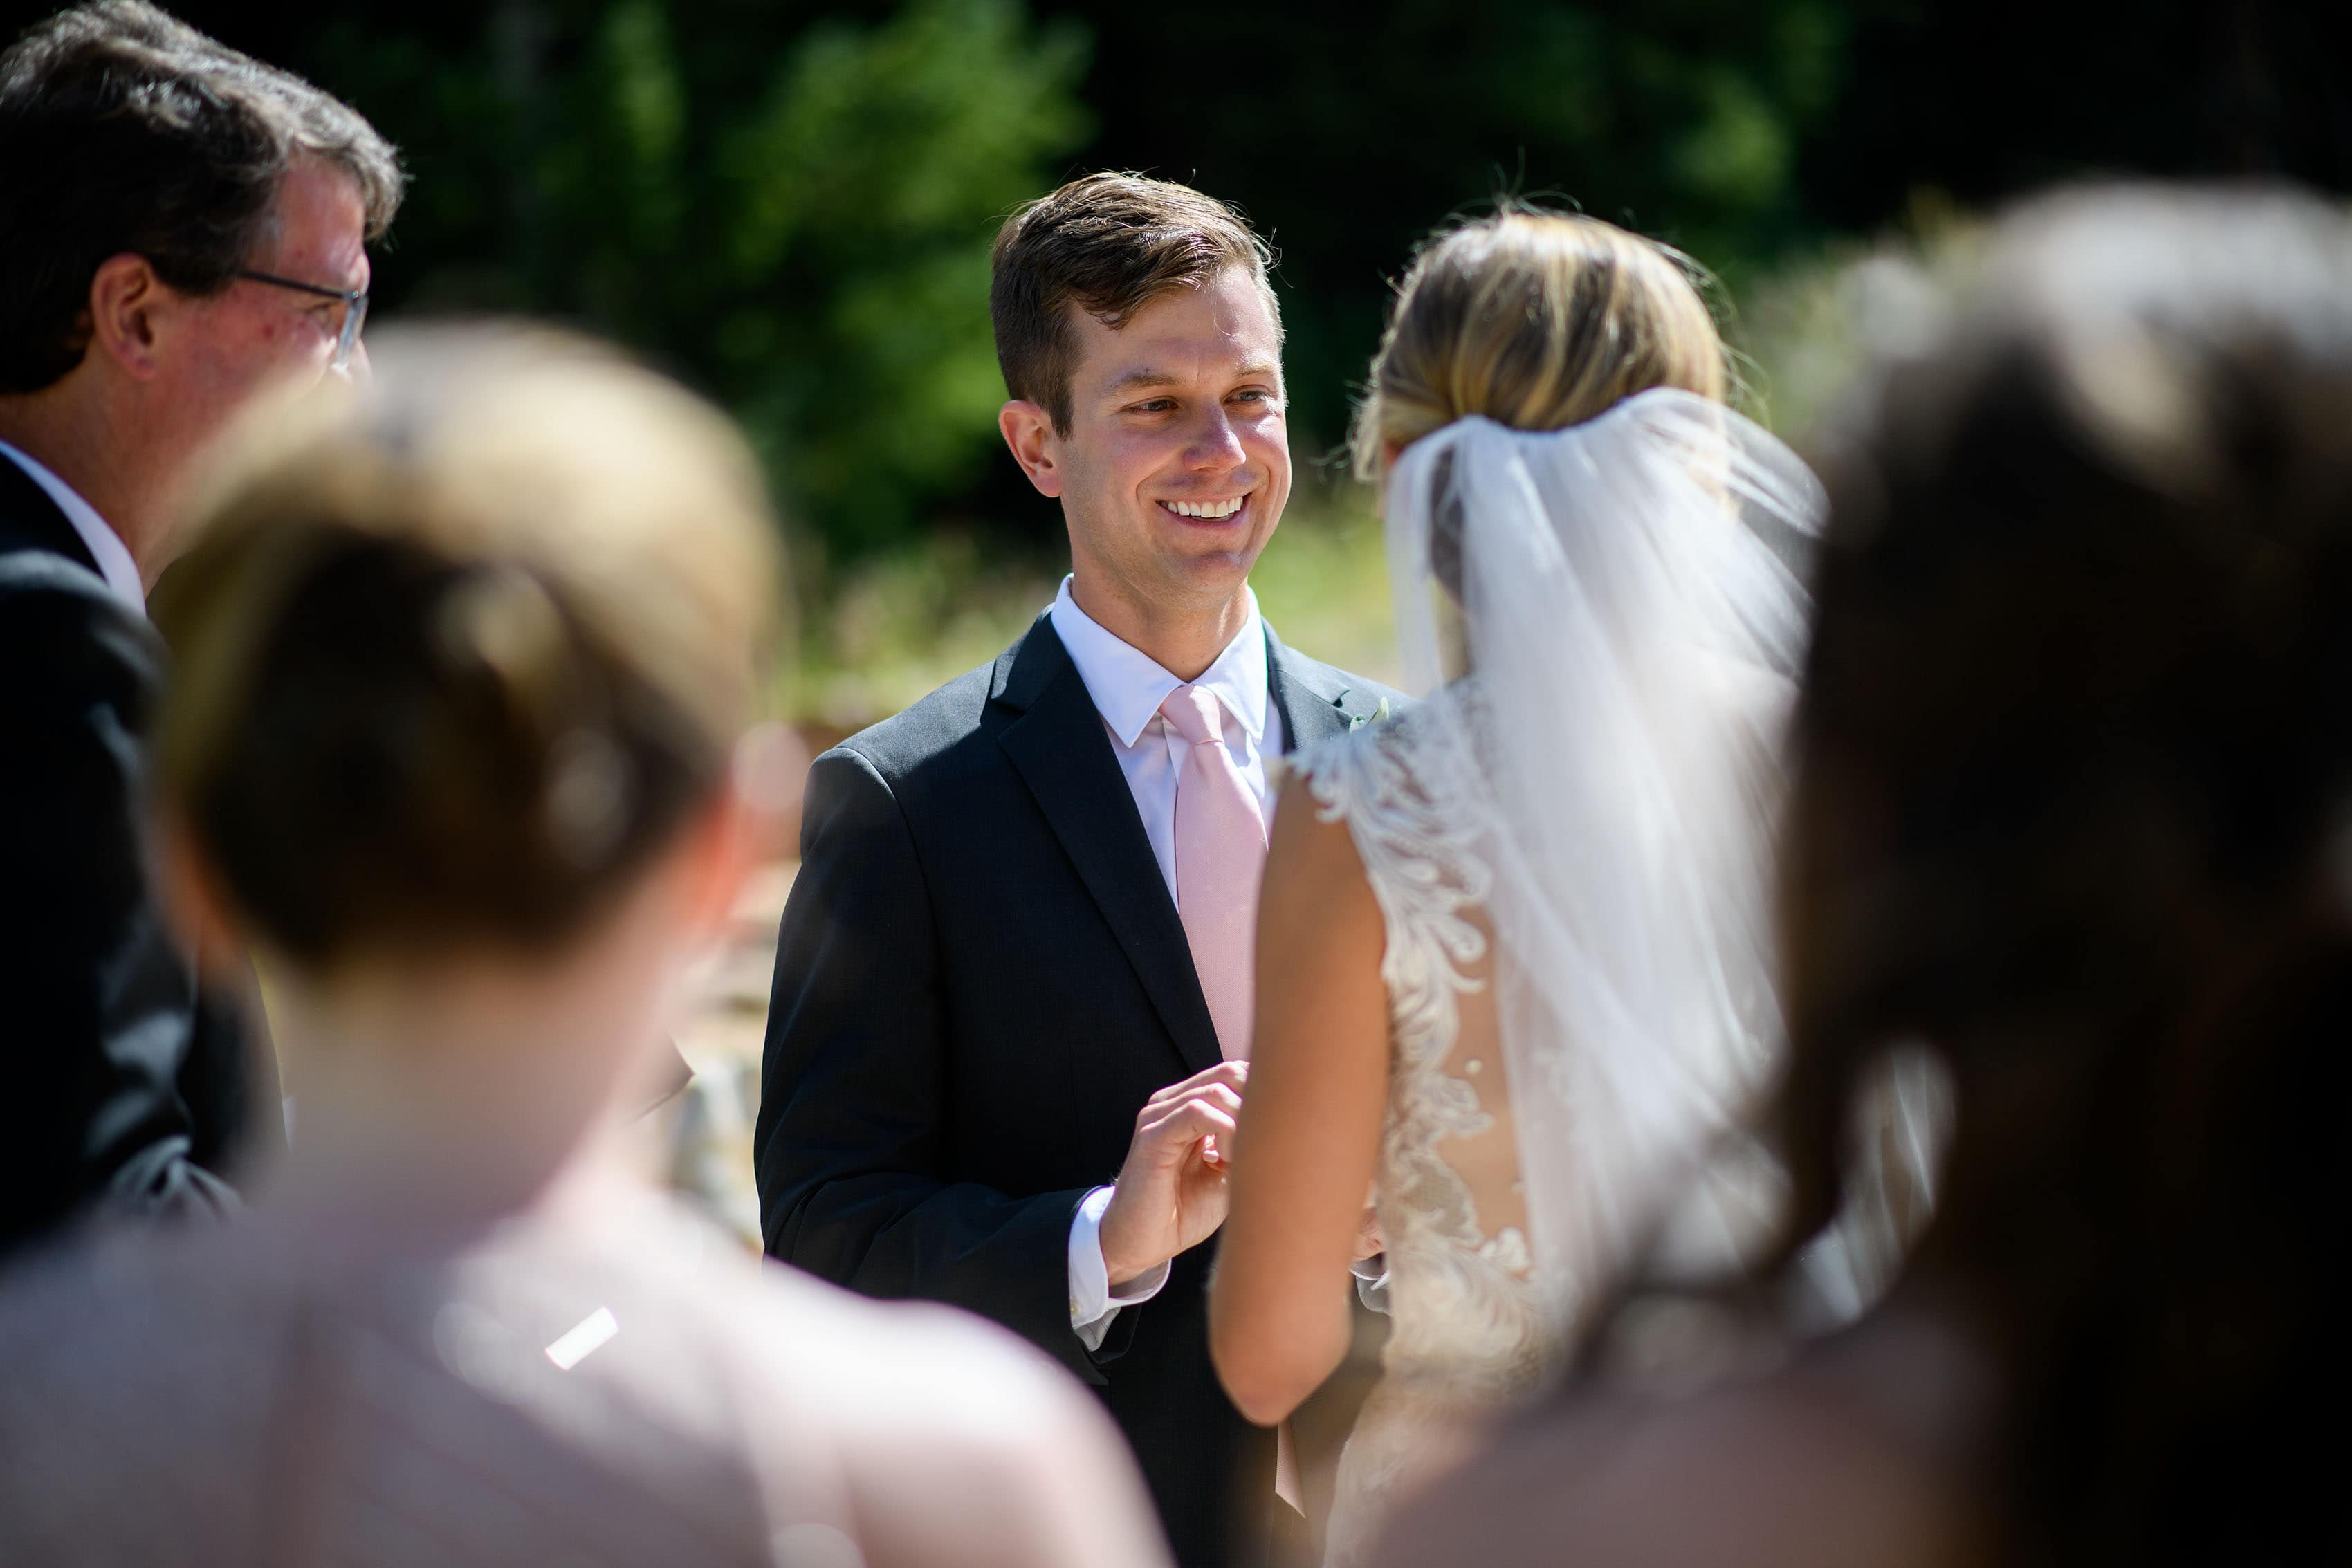 Drew smiles during the wedding ceremony